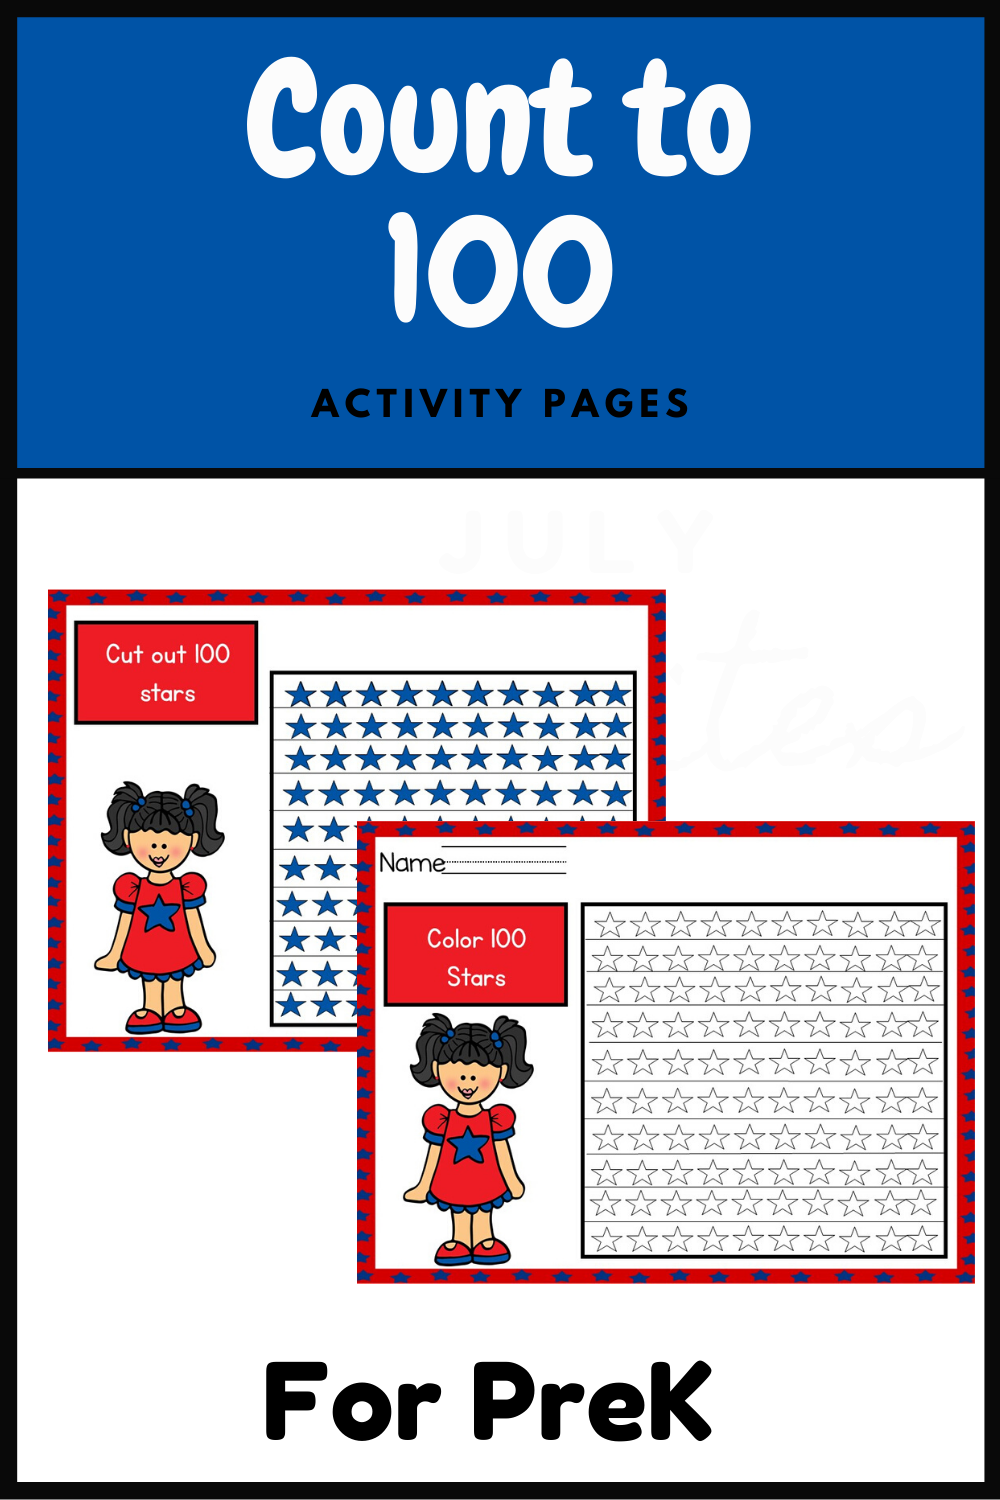 Help Students Count To 100 With These Fourth Of July Activity Sheets Fourthofjulyworksheets Fun Prek P Counting To 100 Fourth Of July Earth Day Activities [ 1500 x 1000 Pixel ]